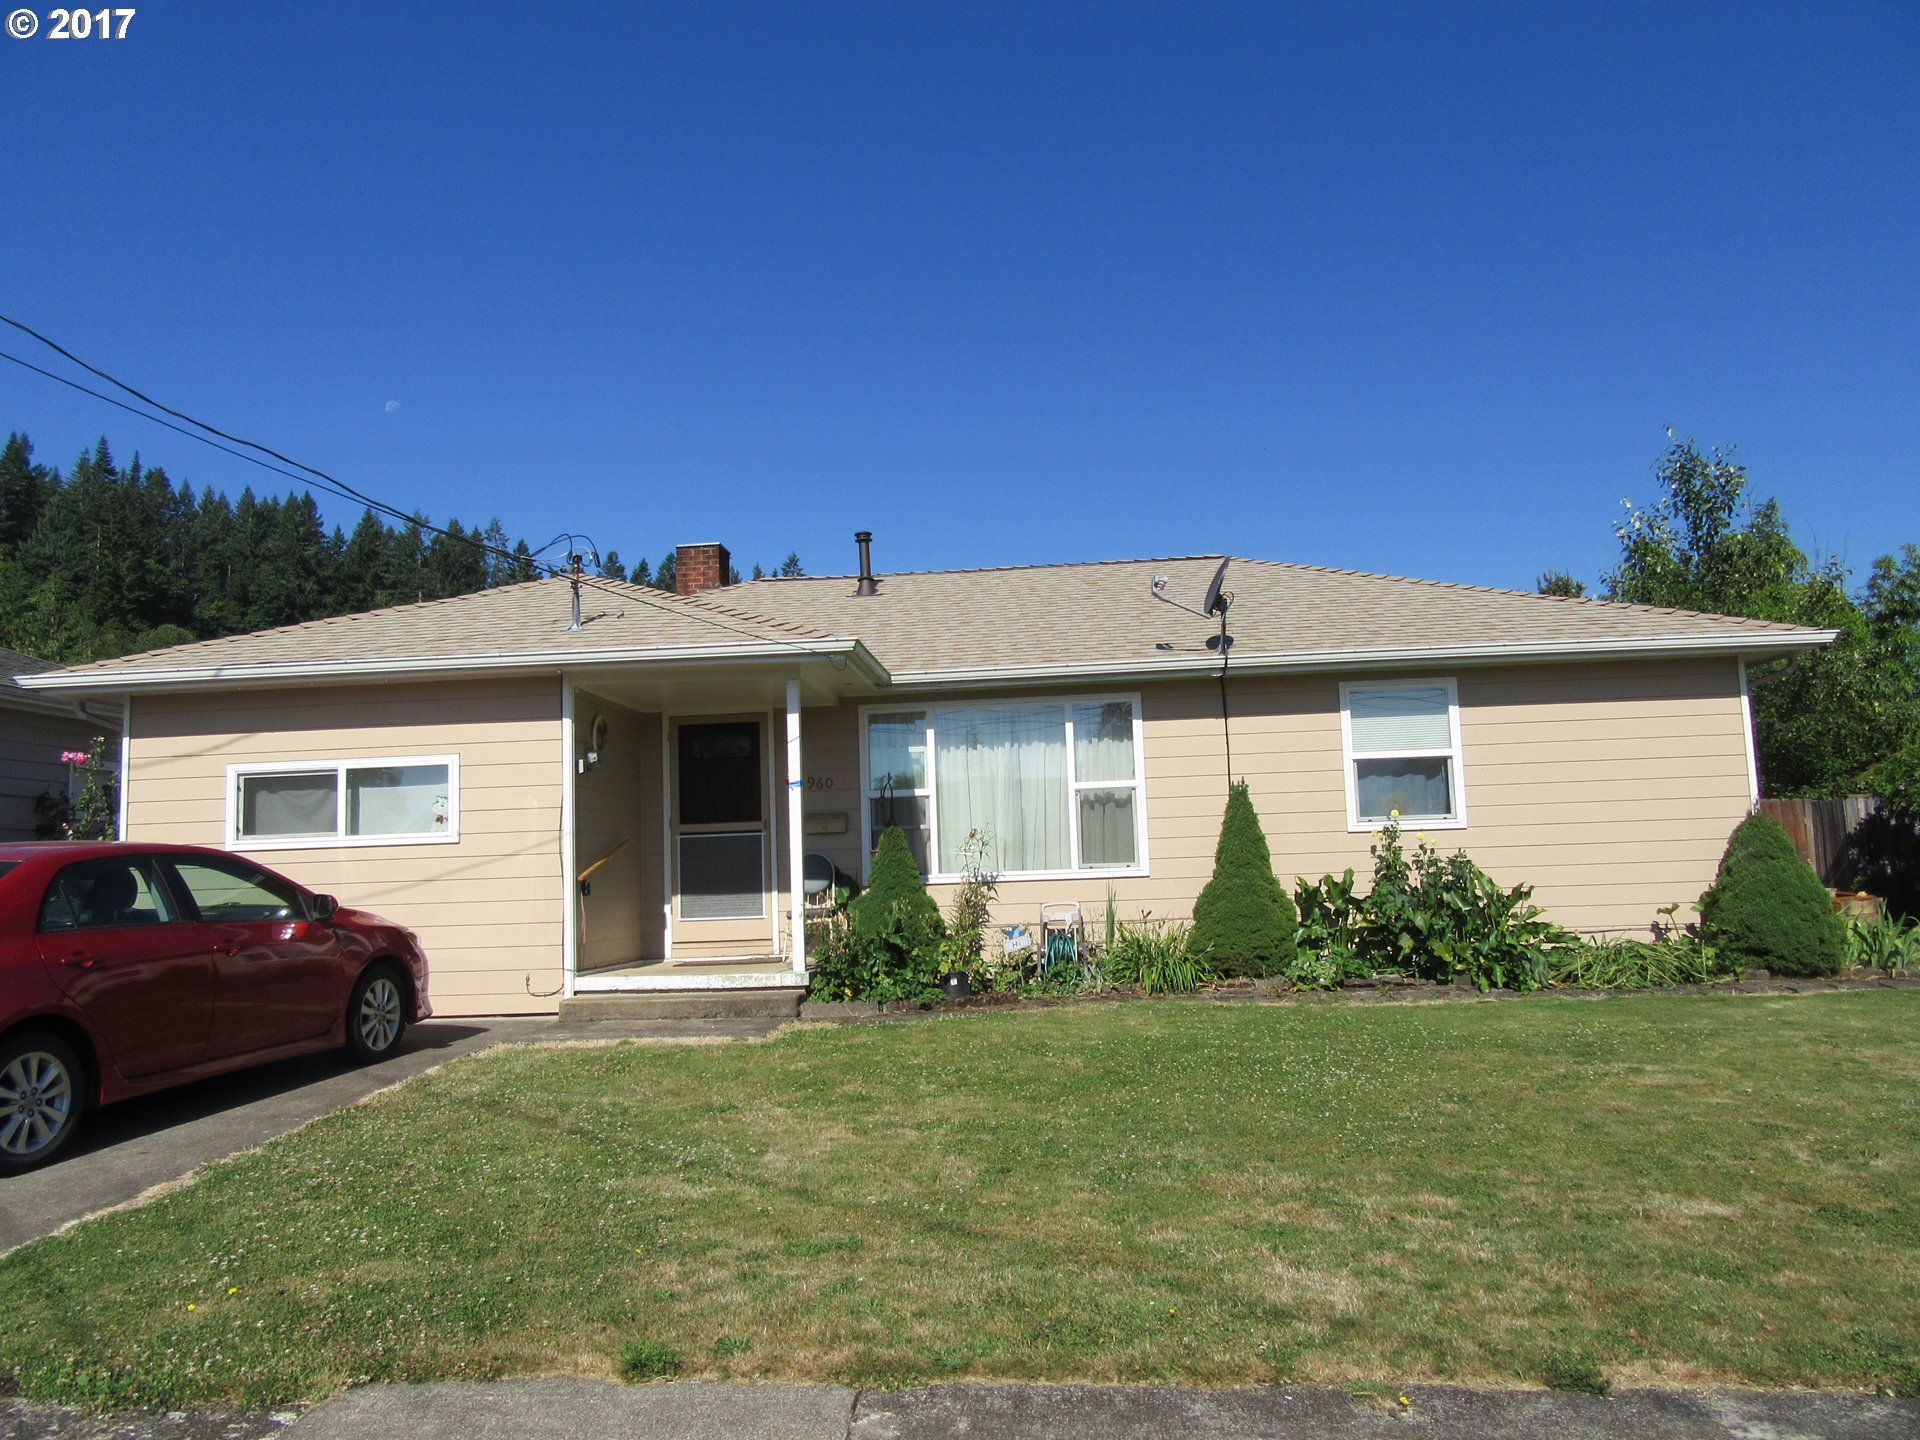 960 3RD AVE, Sweet Home, OR 97386